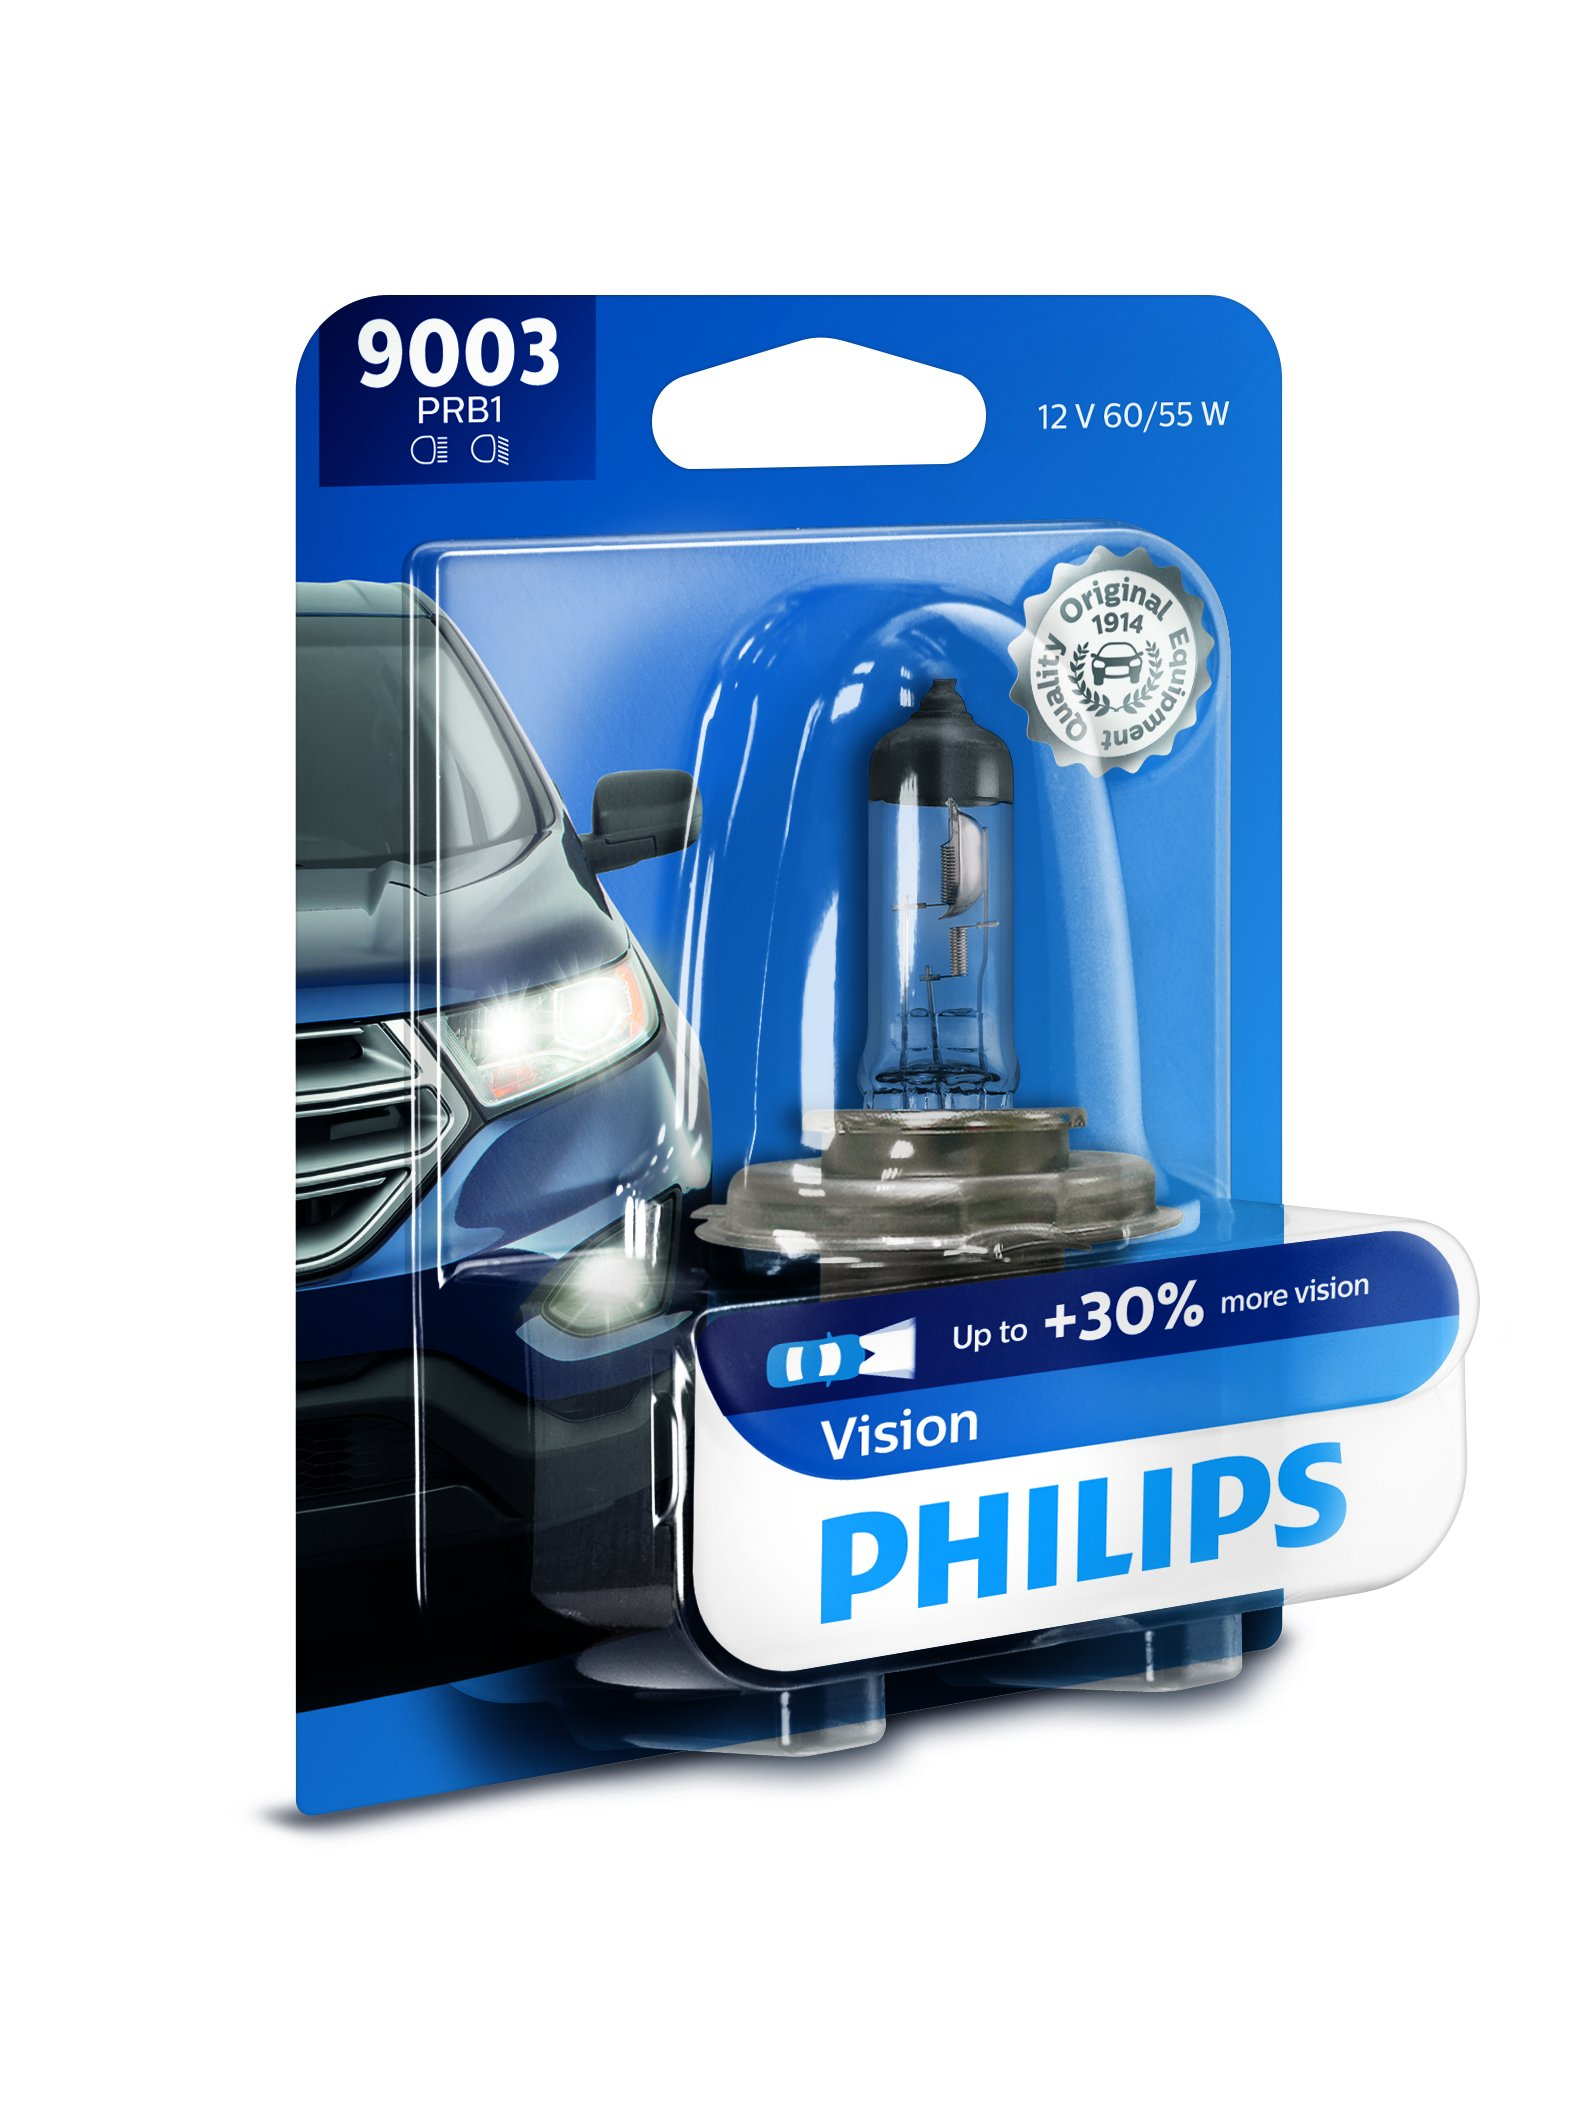 Philips 9003 Vision Upgrade Headlight Bulb with up to 30% More Vision, 1 Pack